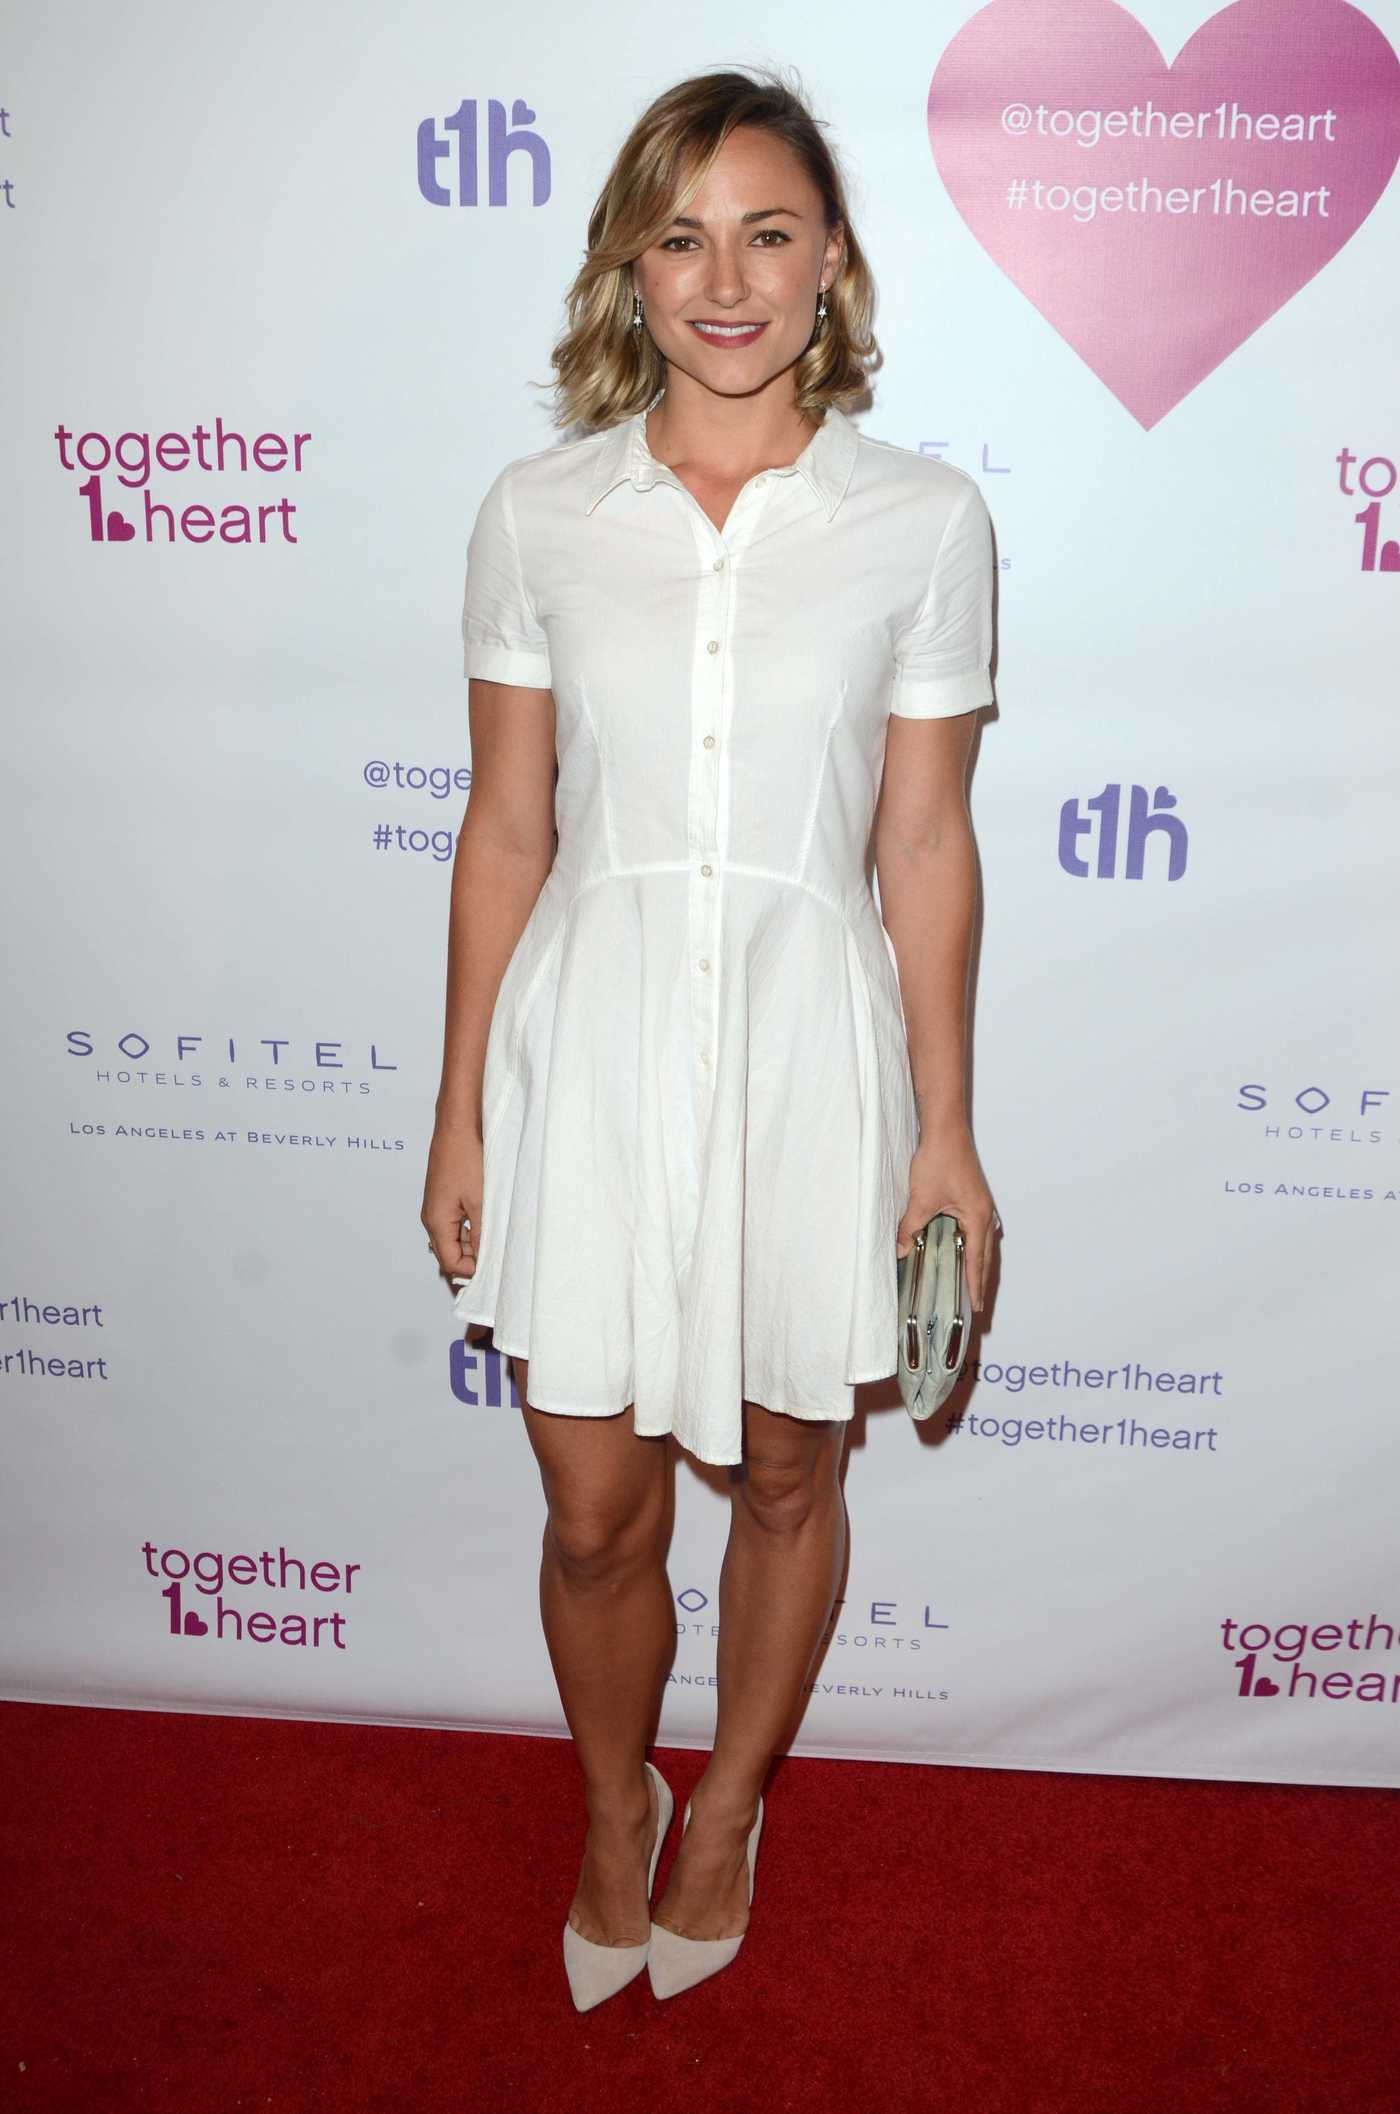 Briana Evigan at the Together1Heart Launch at Sofitel Hotel in Beverly Hills 06/25/2016